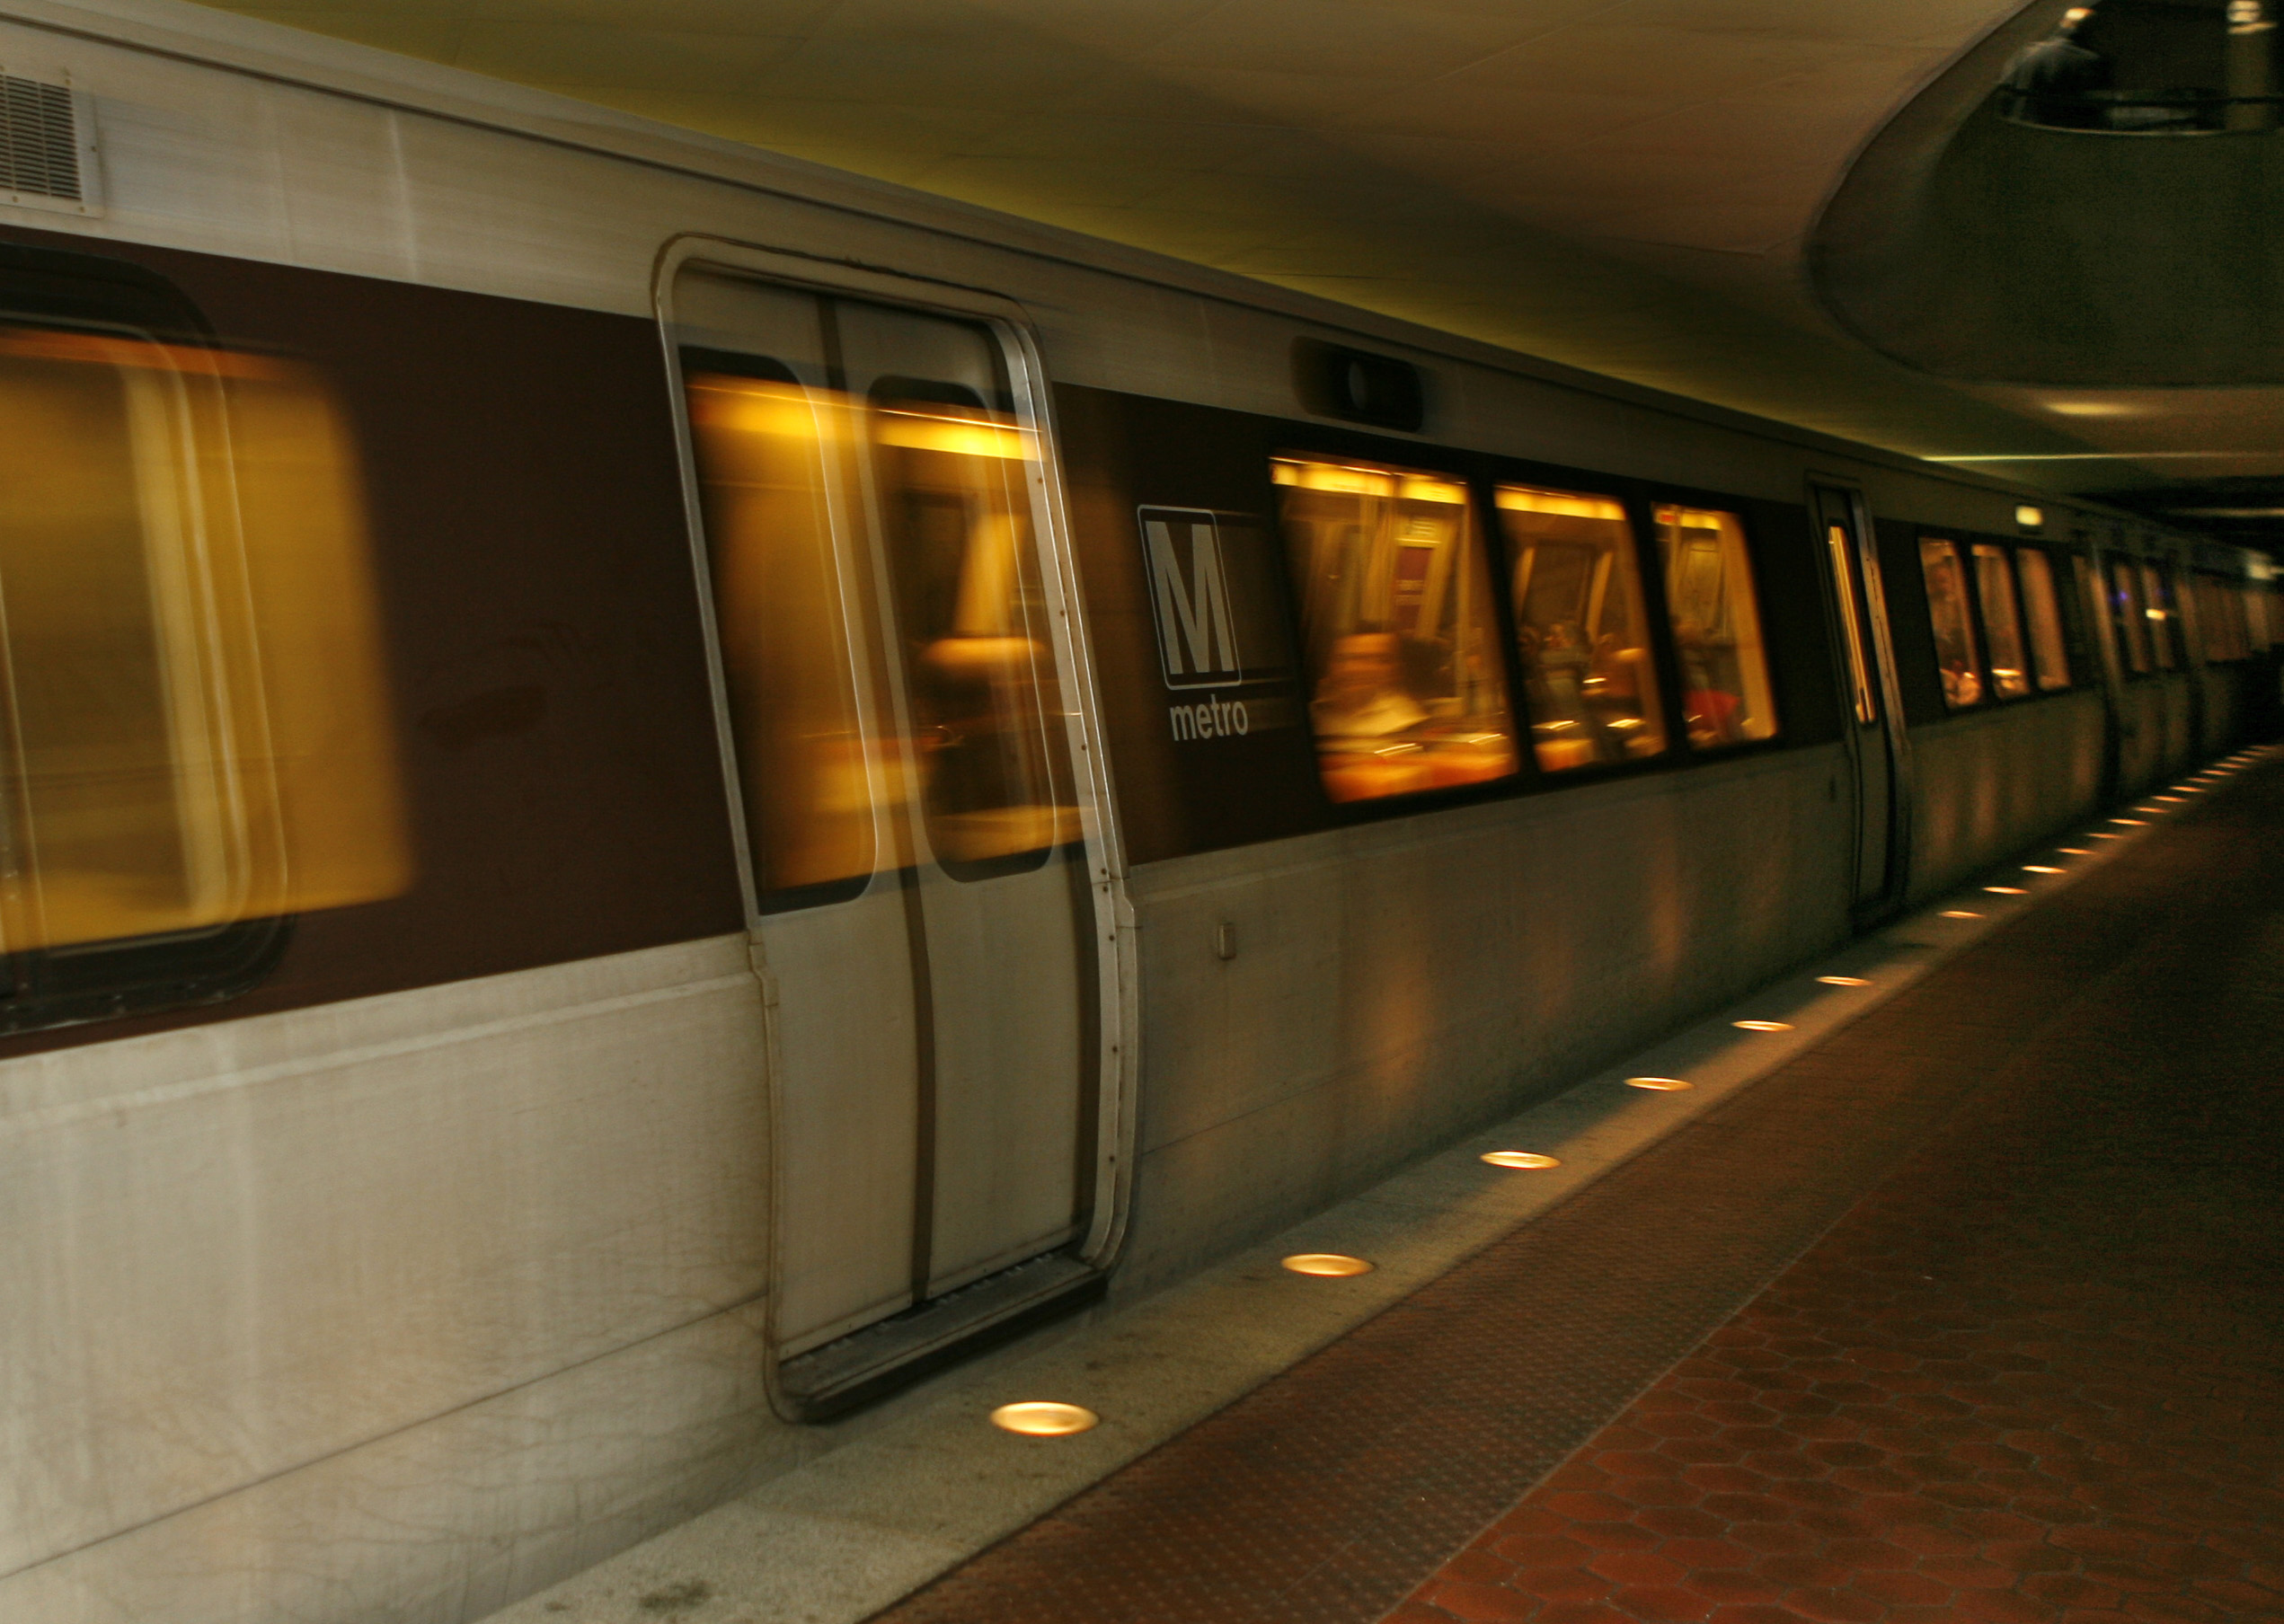 Metro approves sponsorship to provide free rides on New Year's Eve